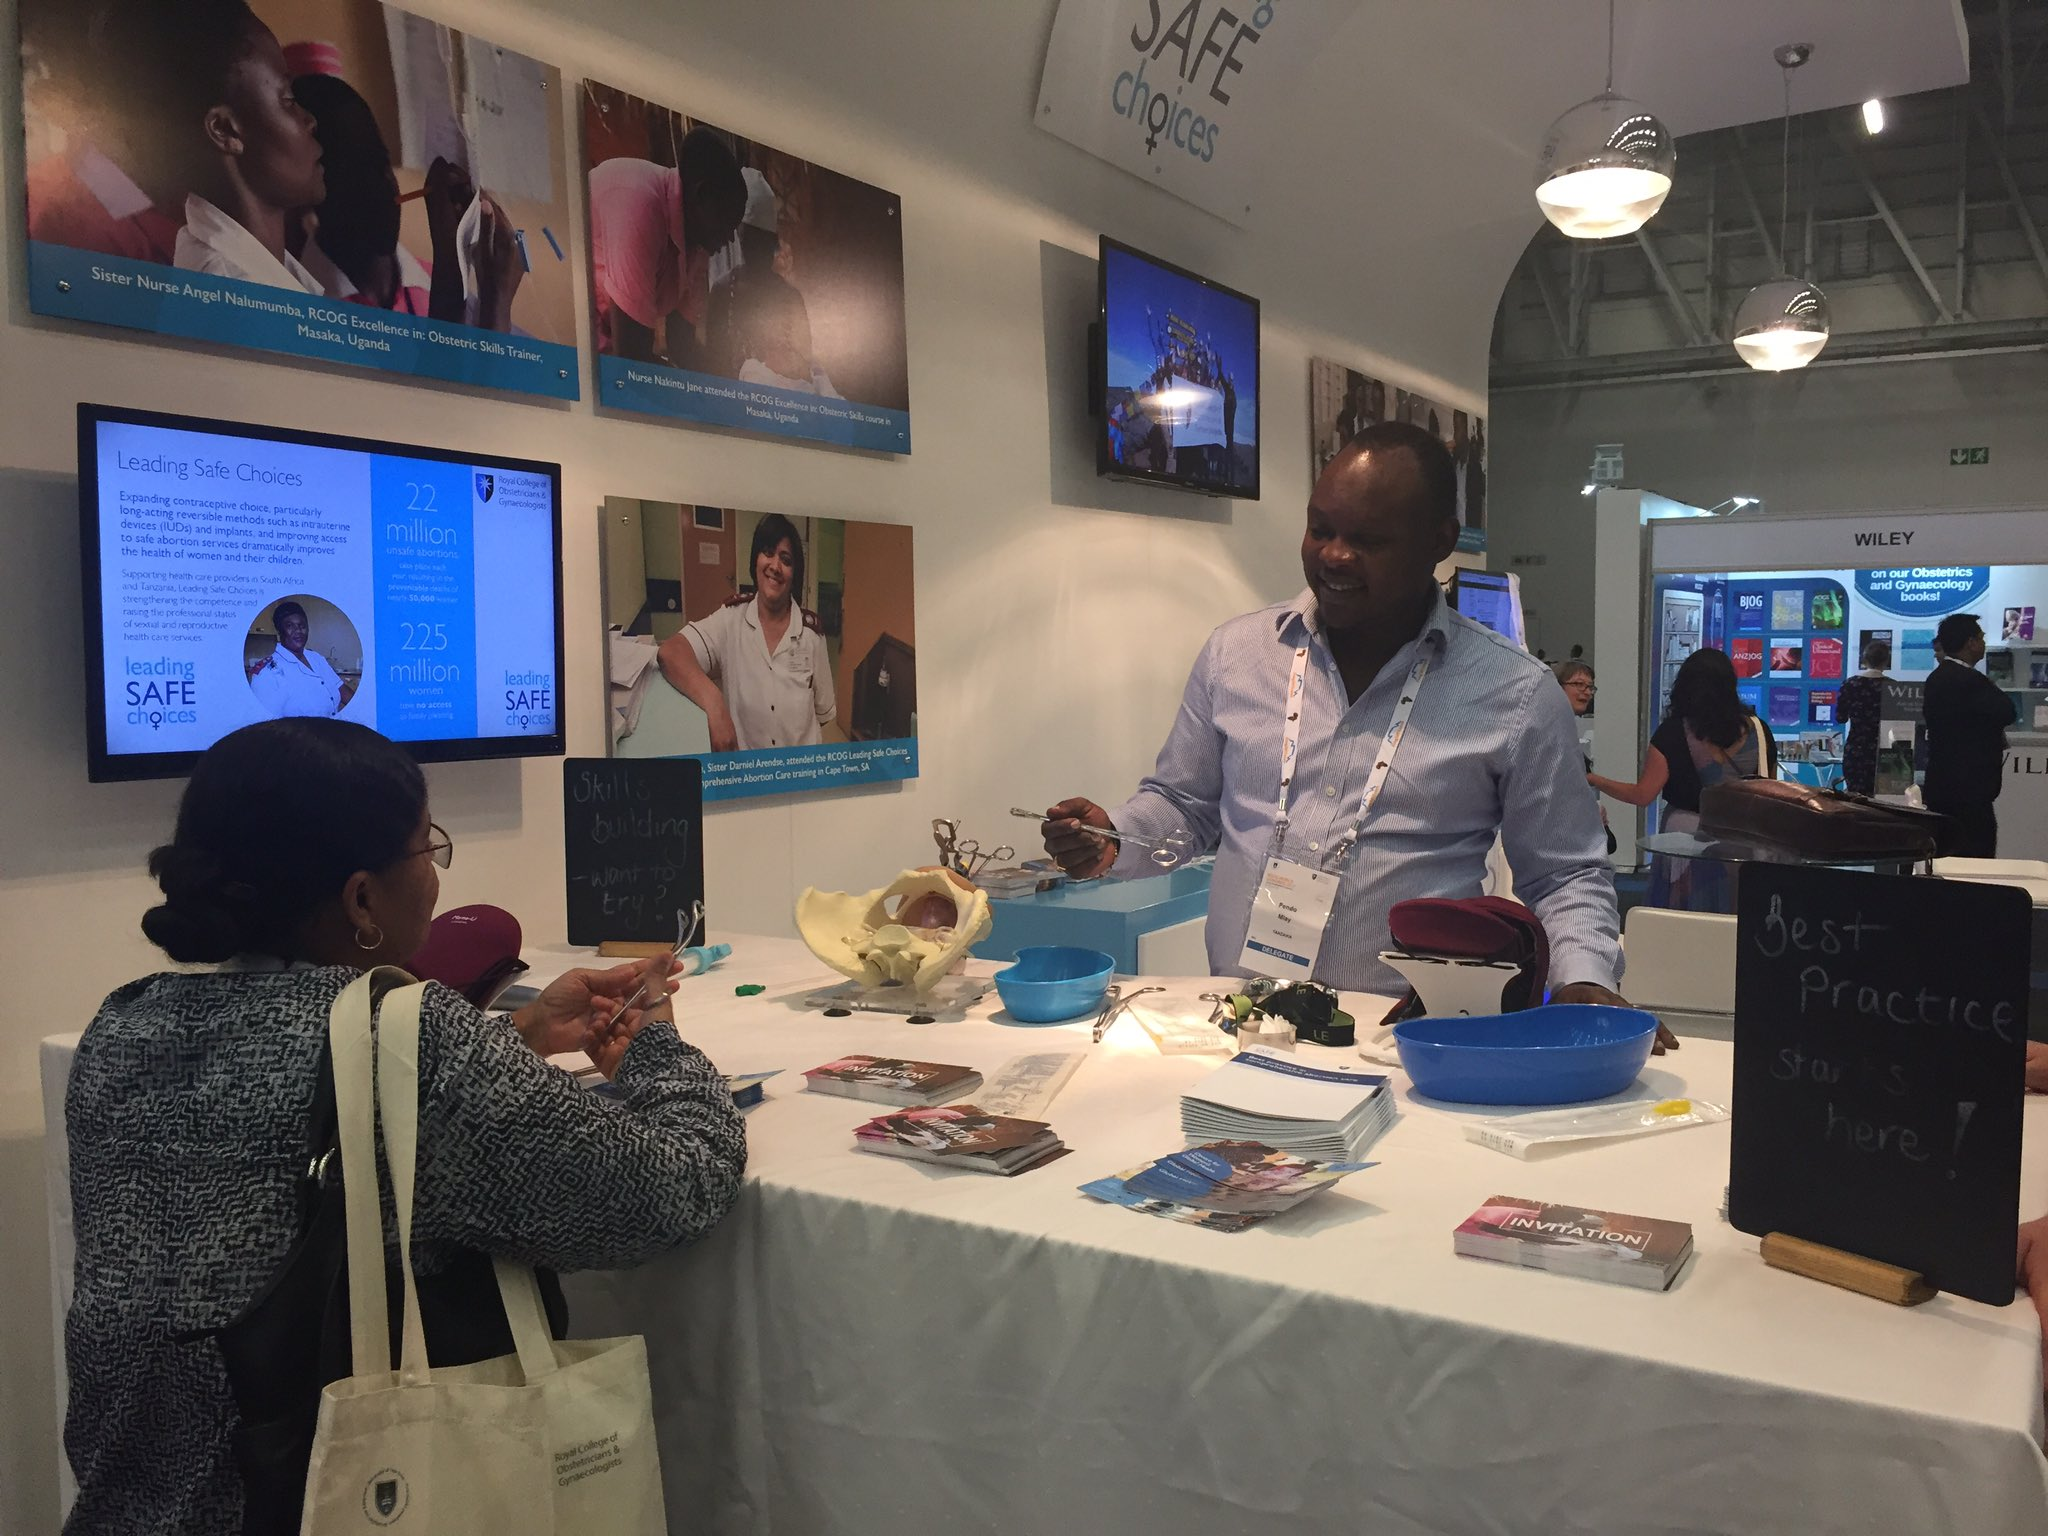 Dr Pendo doing some early morning PPIUD demos on the RCOG stand #rcog2017 https://t.co/tnCmS542av